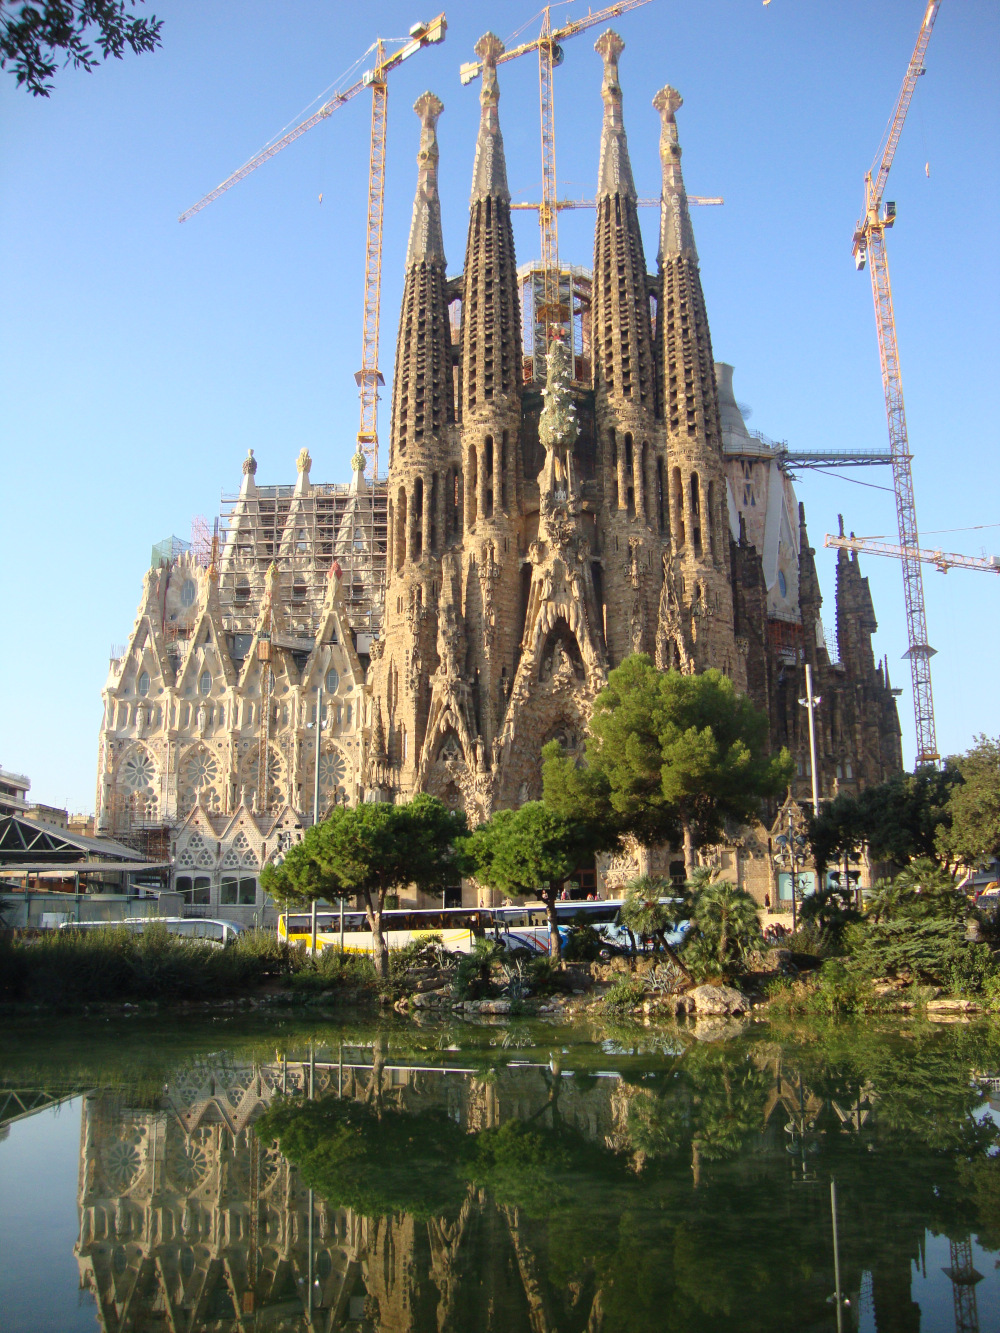 Figure 11a: Sagrada Familia (Barcelona, Spain). Source: Atlas Obscura.